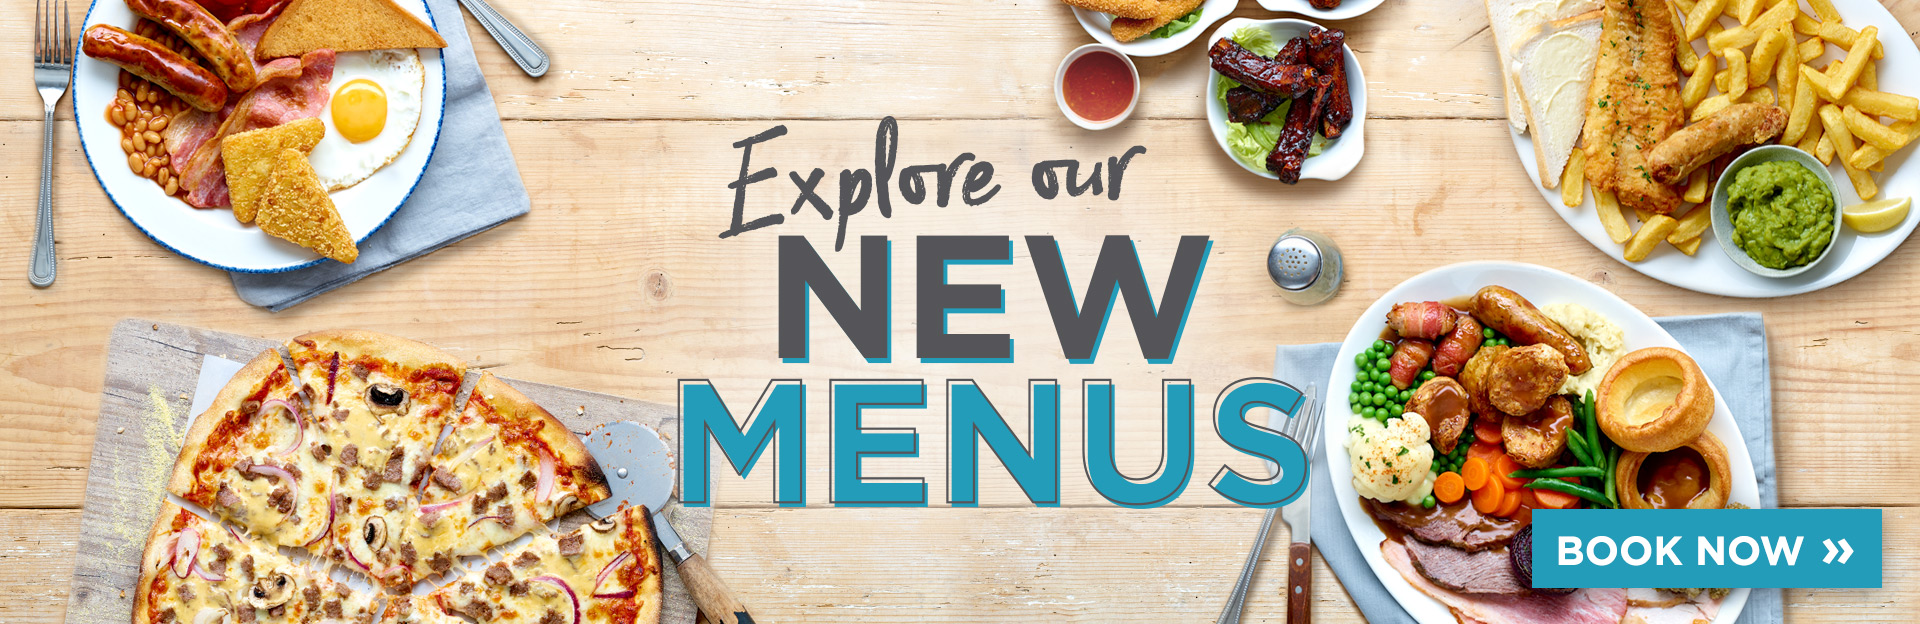 New menu at The Micker Brook